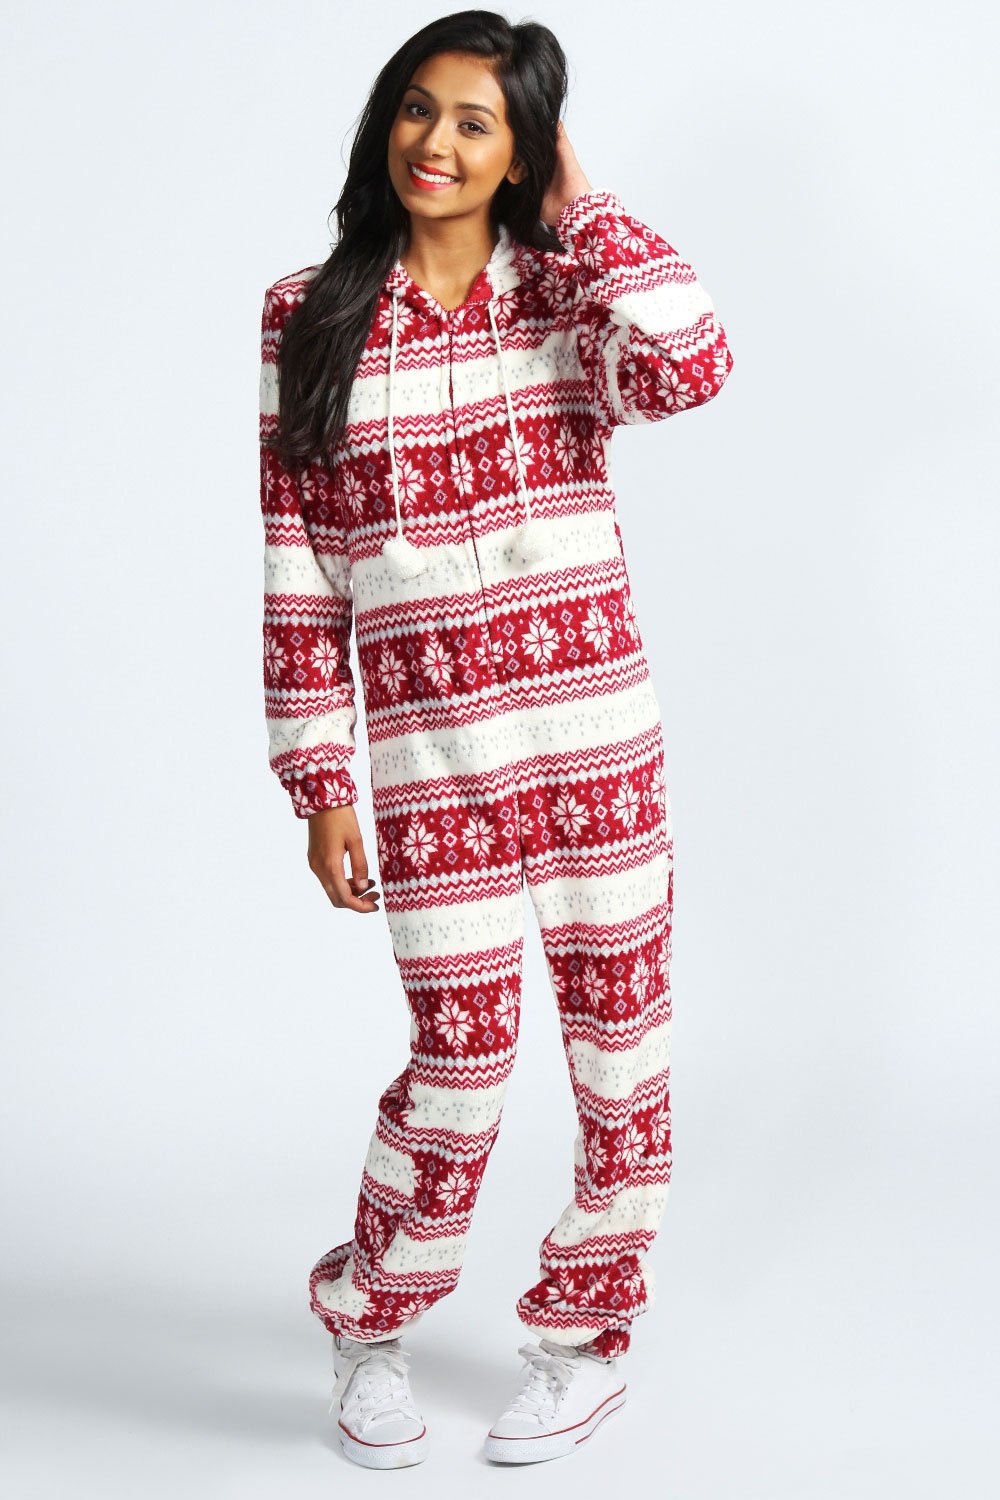 Find great deals on eBay for adult holiday pajamas. Shop with confidence.